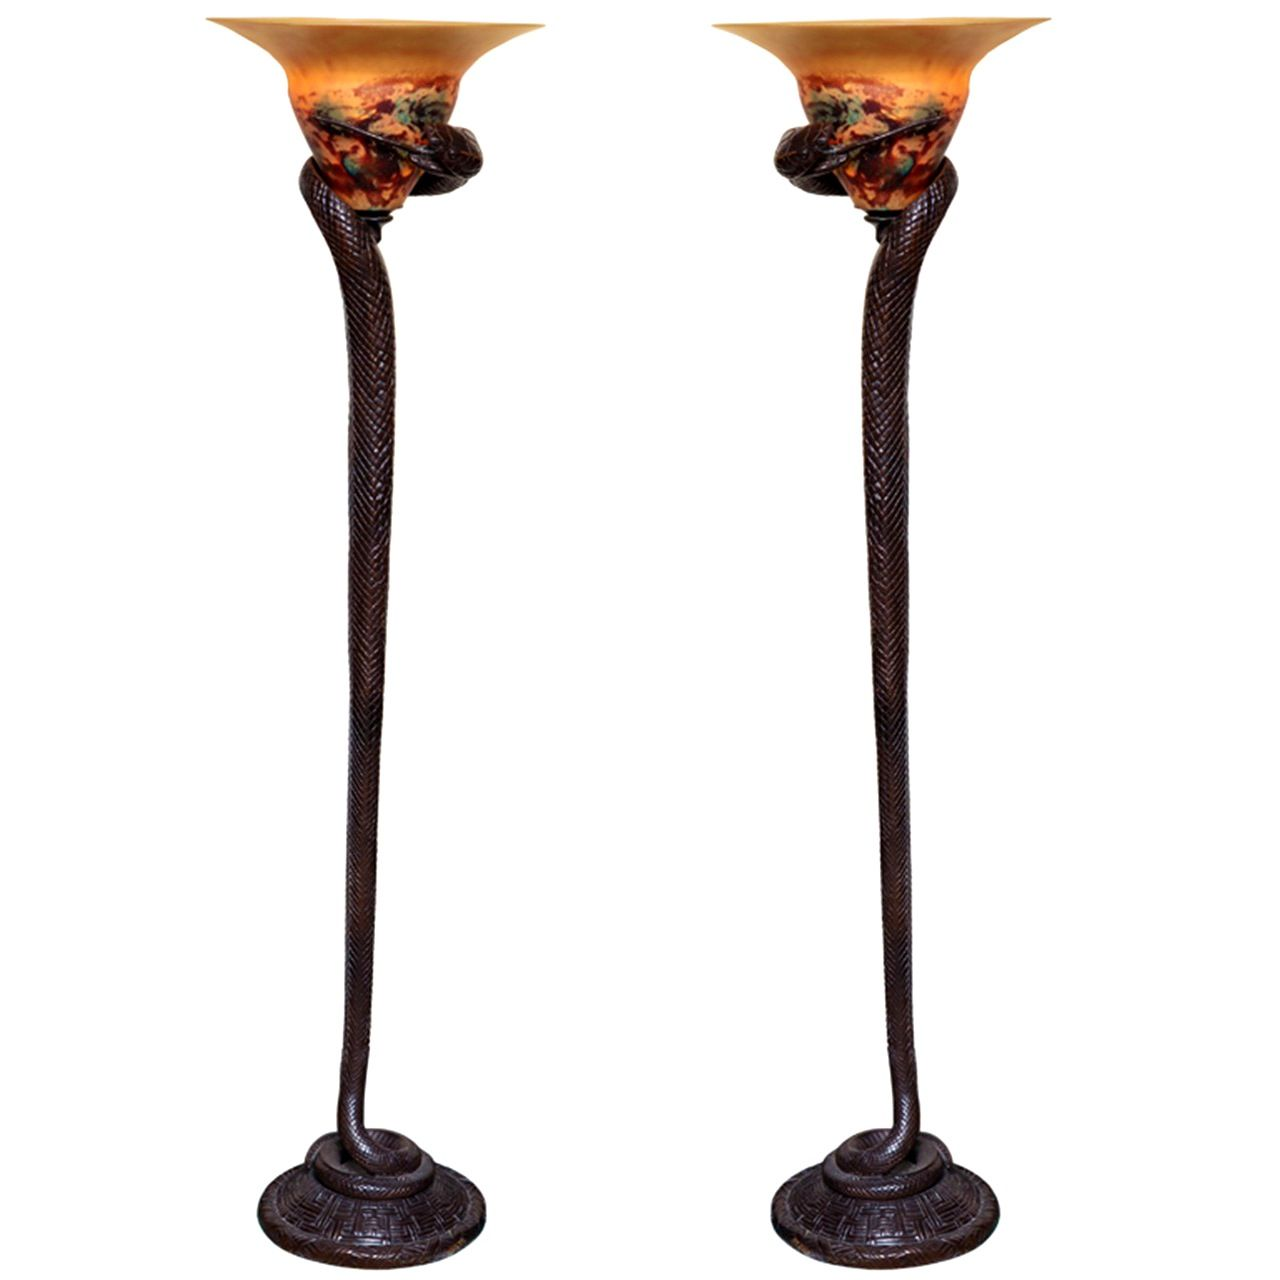 Art Deco Floor Lamp Prepossessing Furnitureattractive Images About Art Deco Lighting Floor Lamps Review